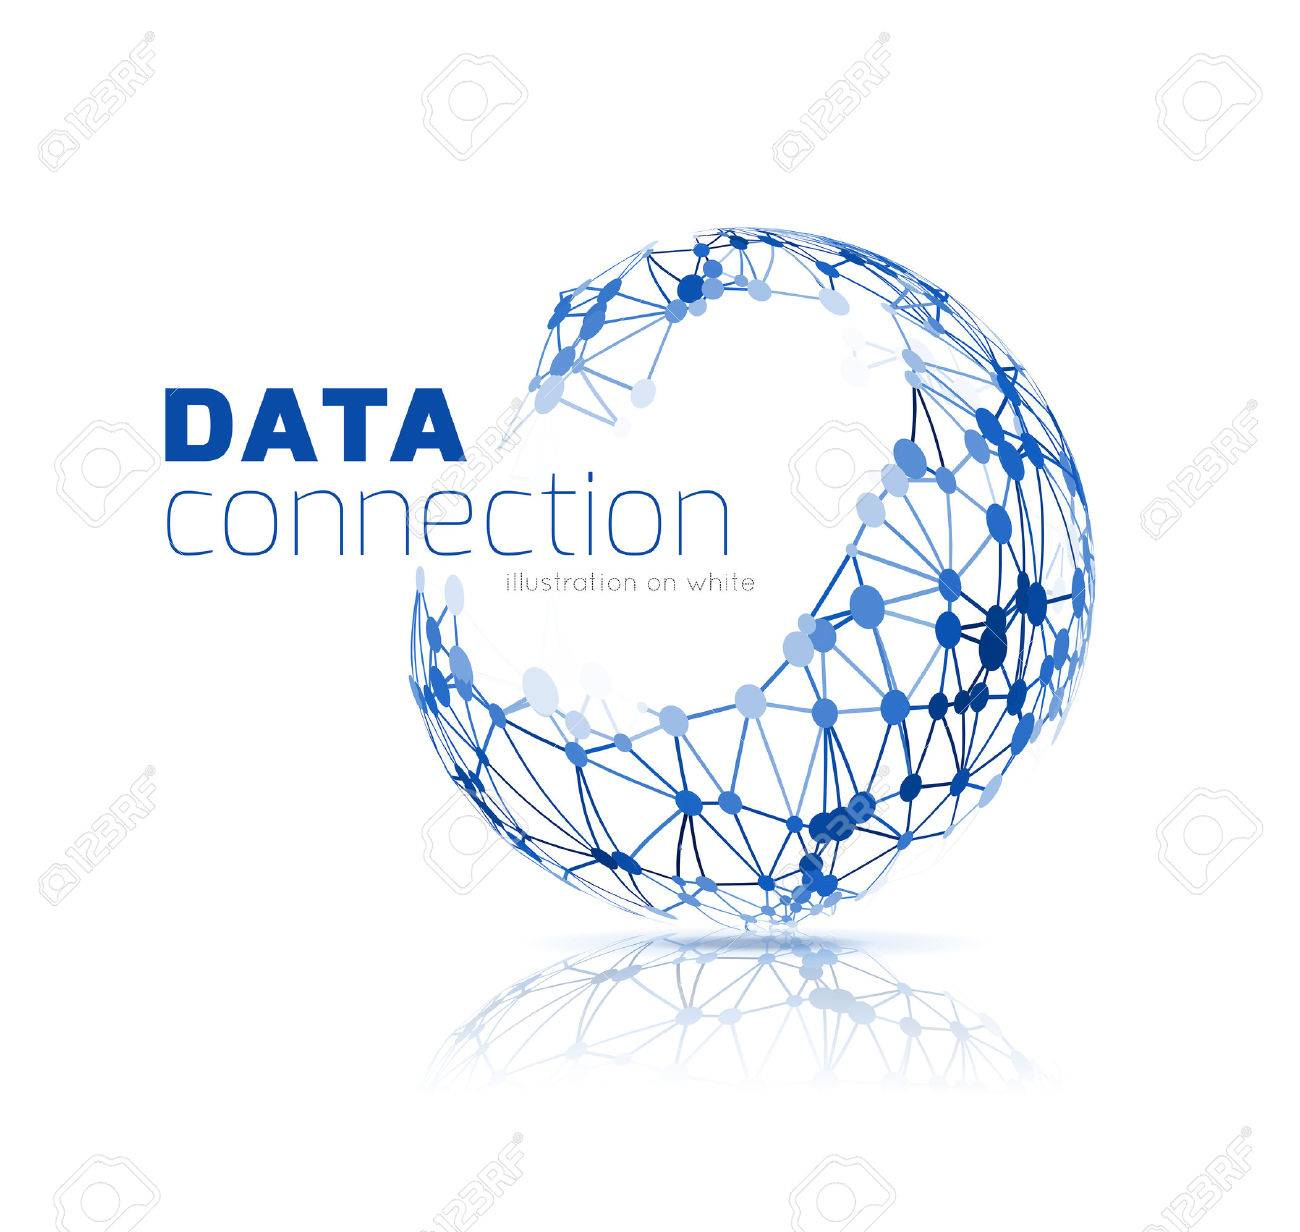 Abstract network connection background - 35282554